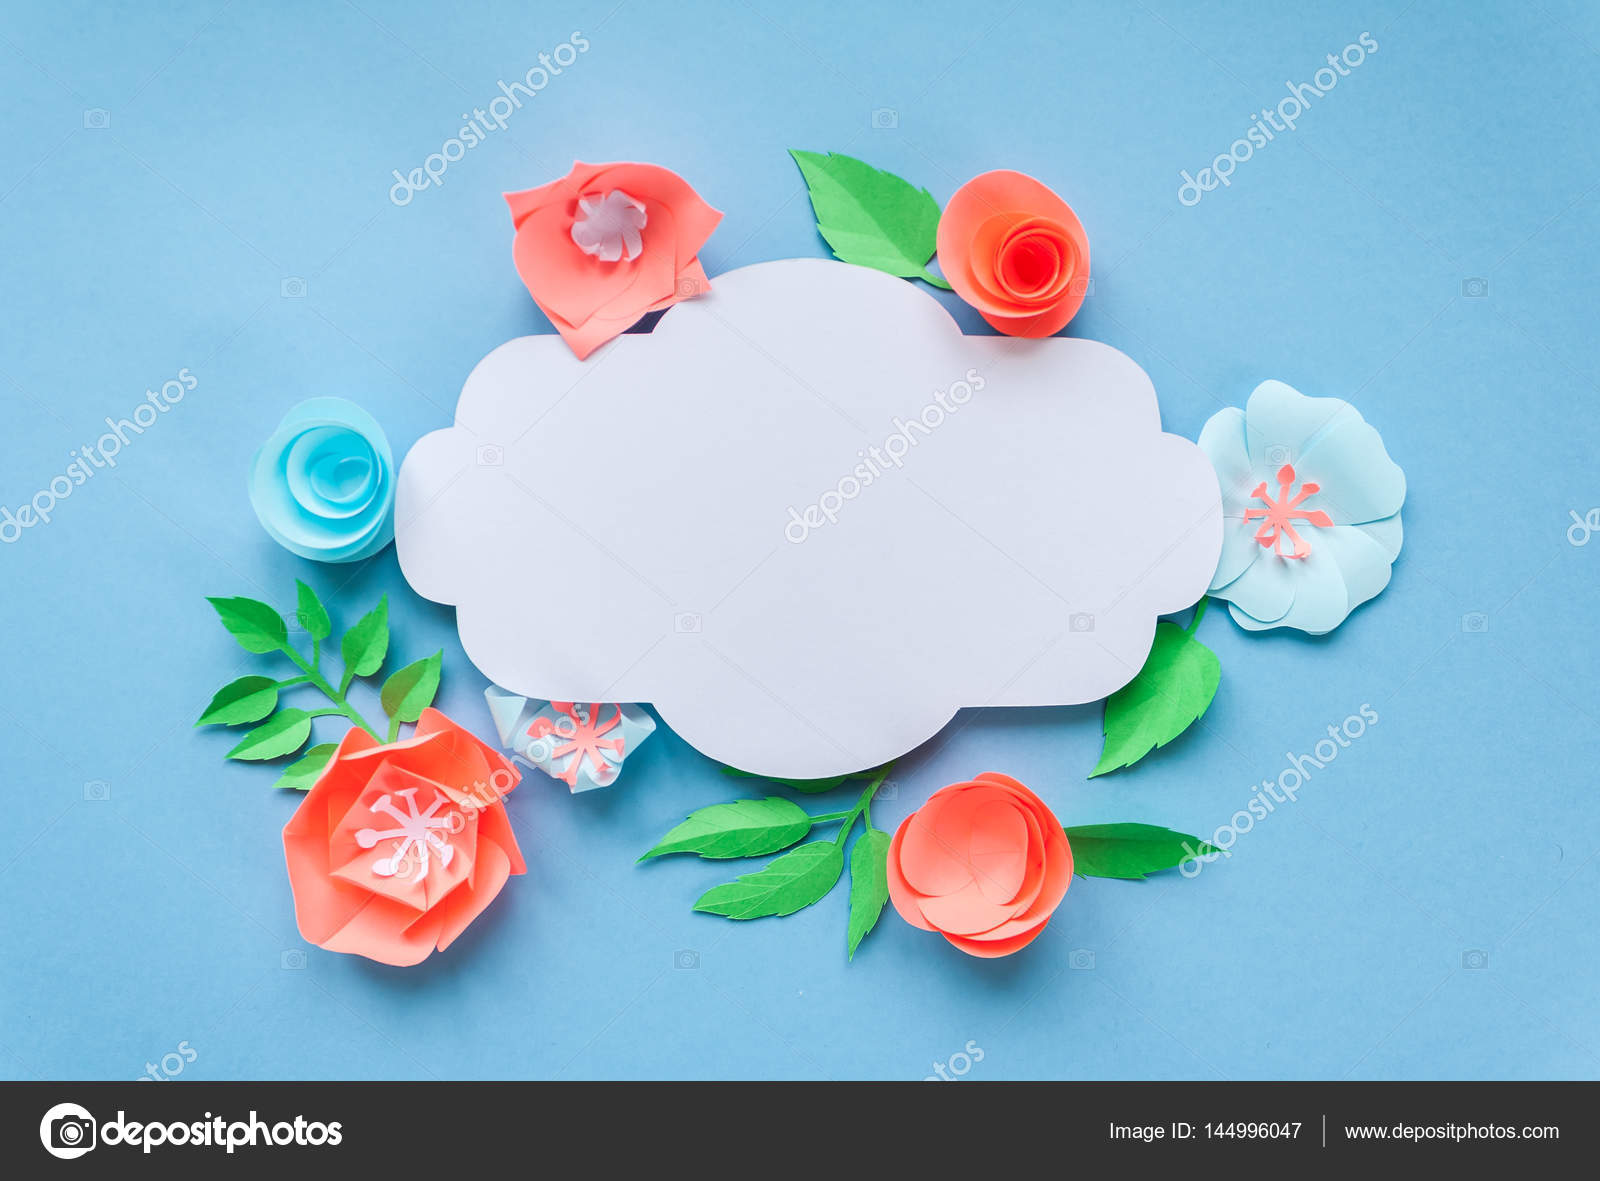 Vintage frame with color paper flowers on the blue background flat vintage frame with color paper flowers on the blue background flat lay nature concept mightylinksfo